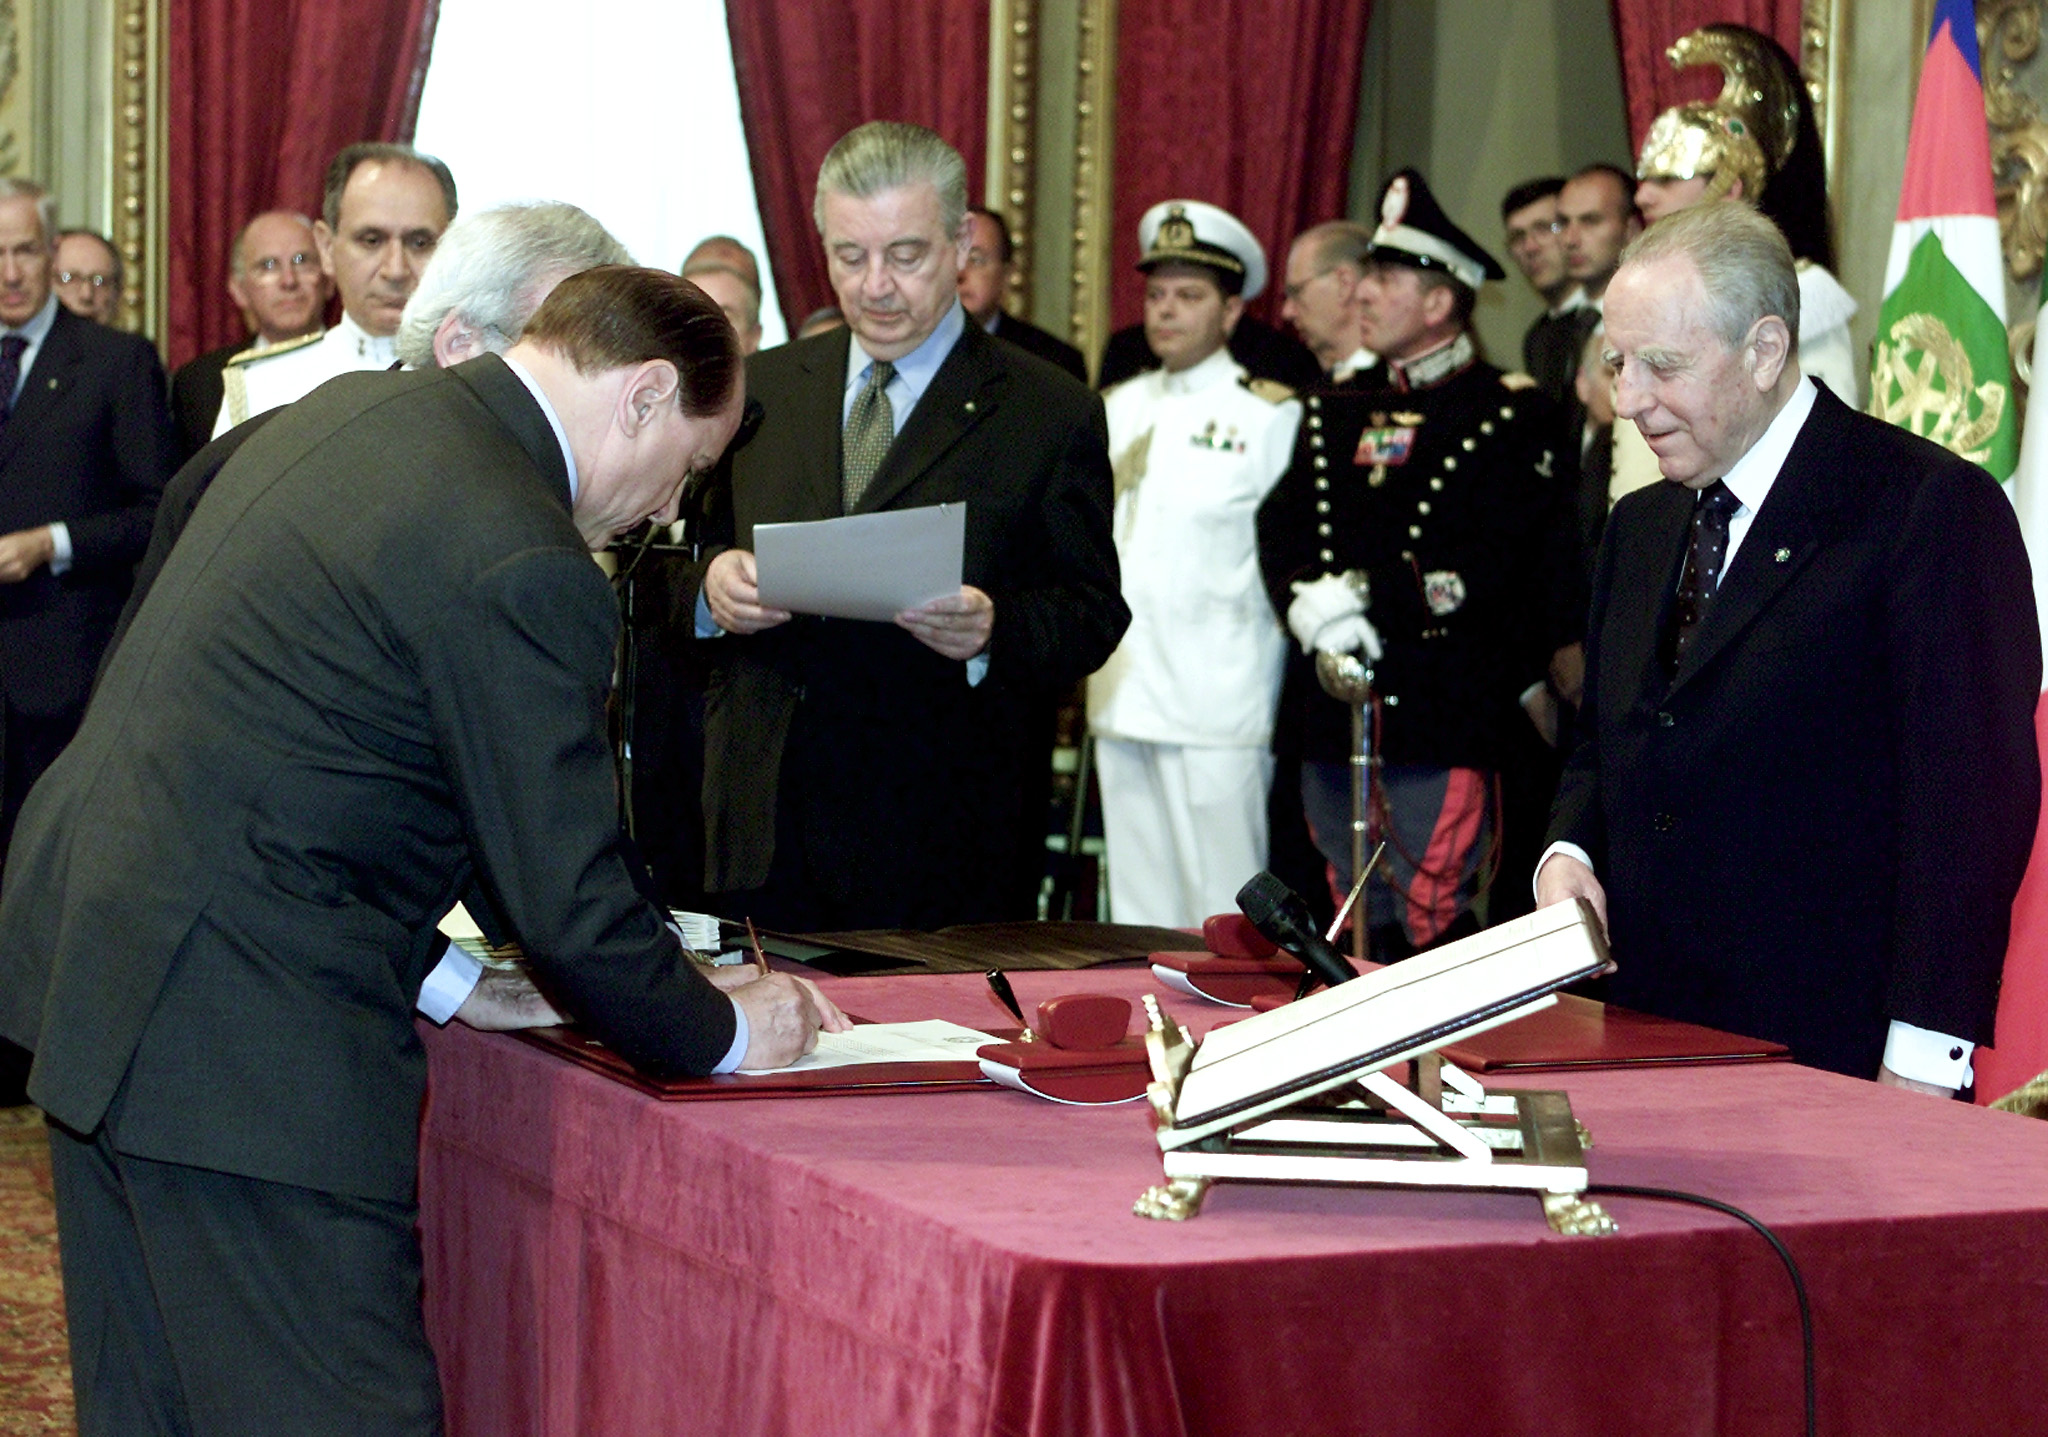 taly's new Prime Minister Silvio Berlusconi (L) signs his swearing-in form in front of President Carlo Azeglio Ciampi during an official ceremony at Quirinale palace in Rome June 11, 2001.